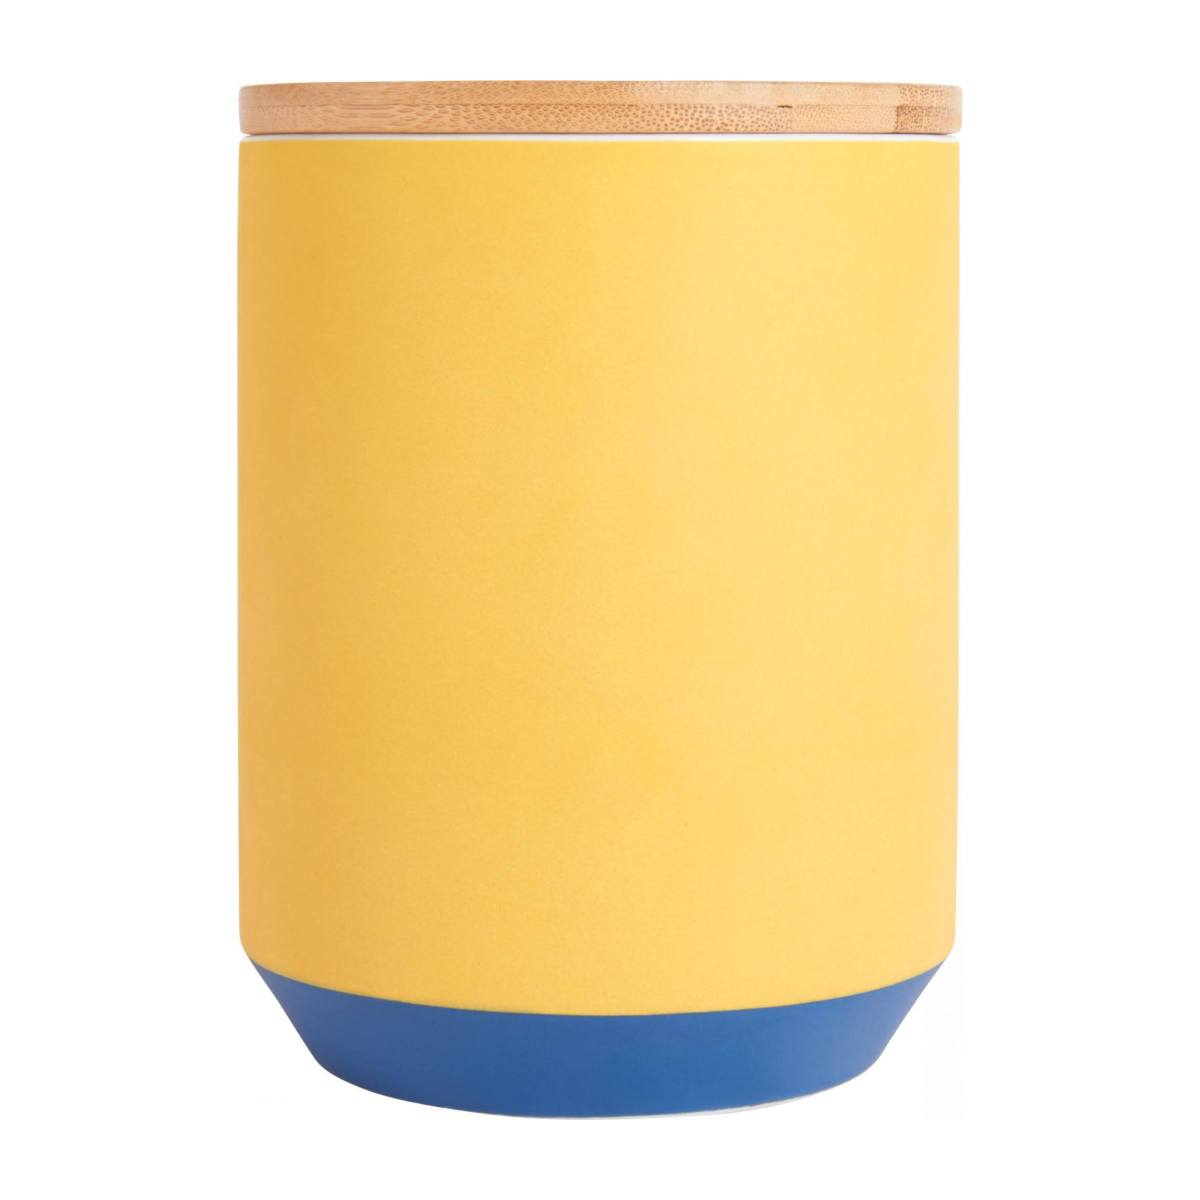 Box made of porcelain and bamboo 16cm, yellow n°2